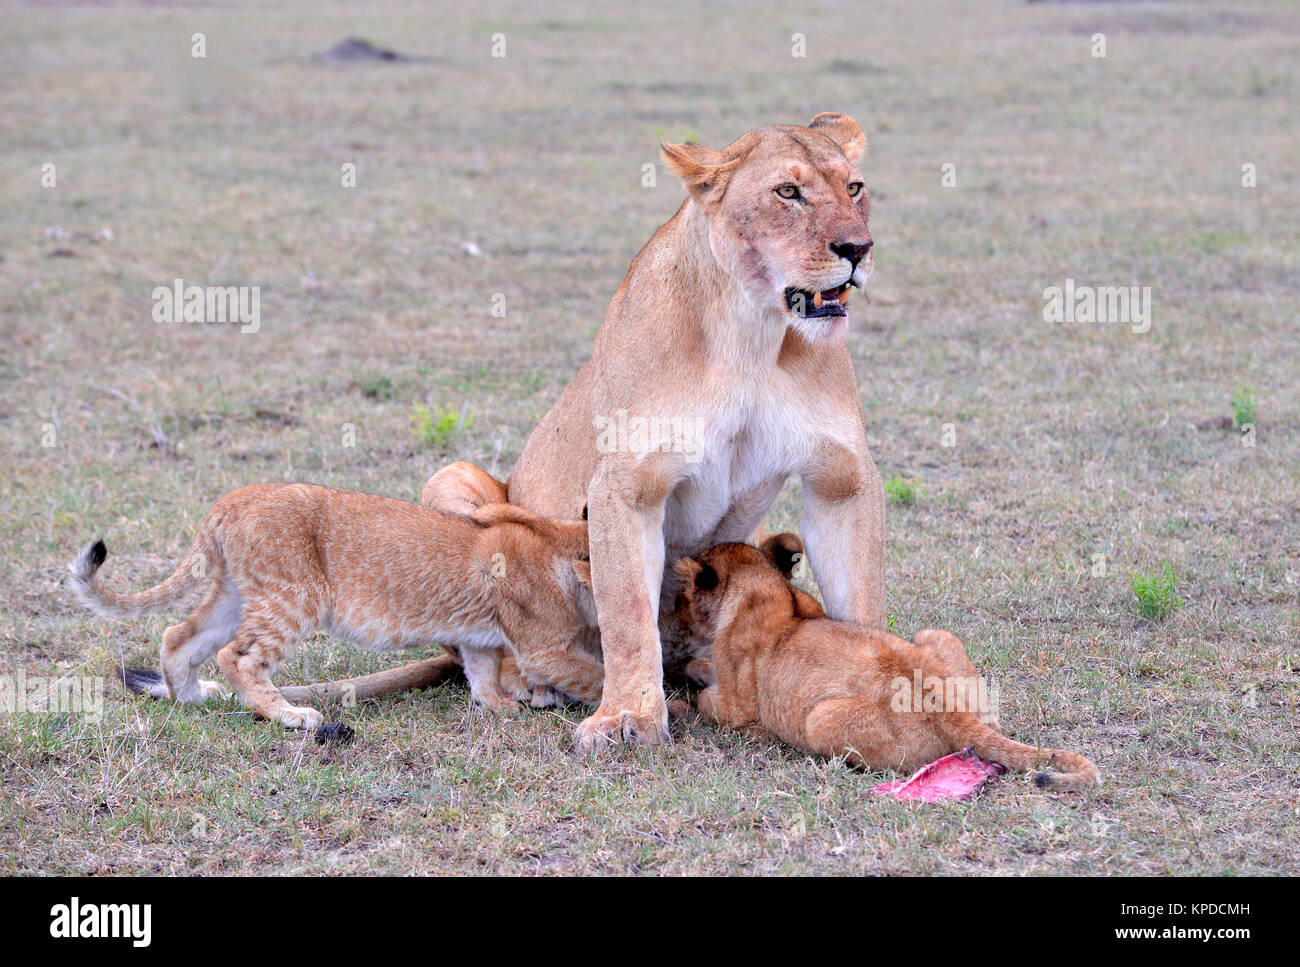 Wildlife in Maasai Mara, Kenya. Lioness with cubs - Stock Image